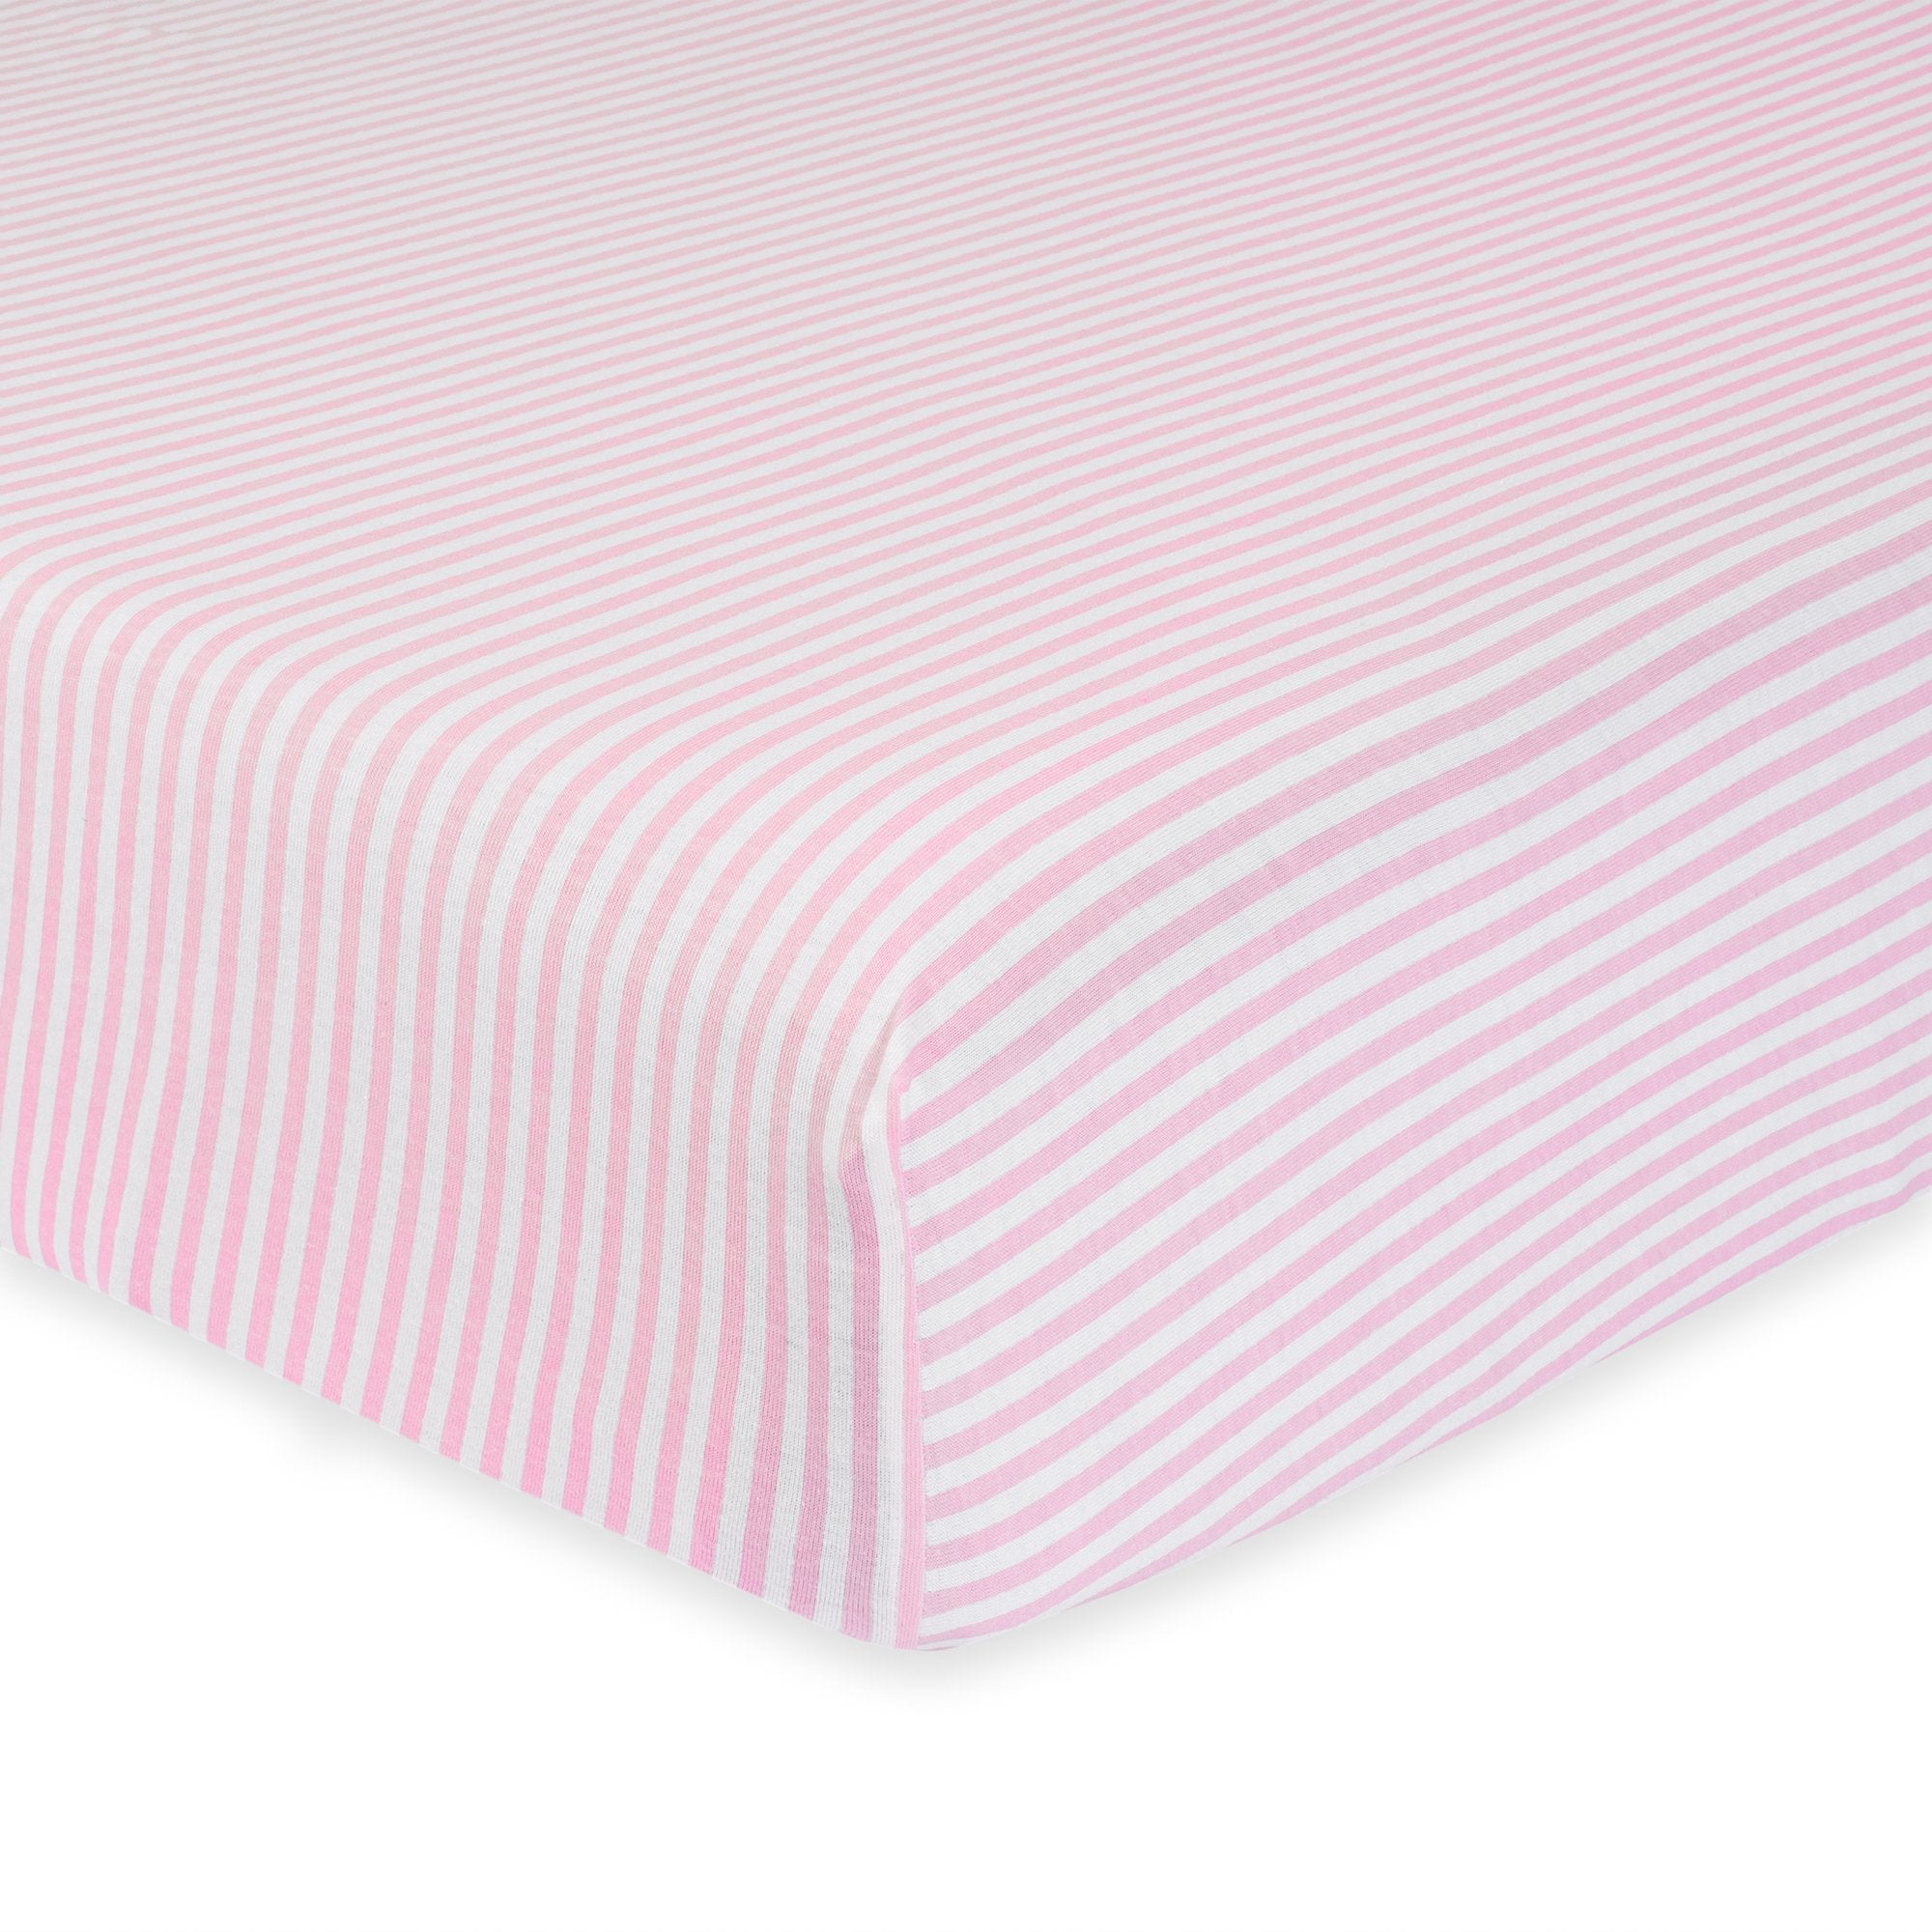 1-Pack Girls Pink Organic Fitted Crib Sheet-Gerber Childrenswear Wholesale